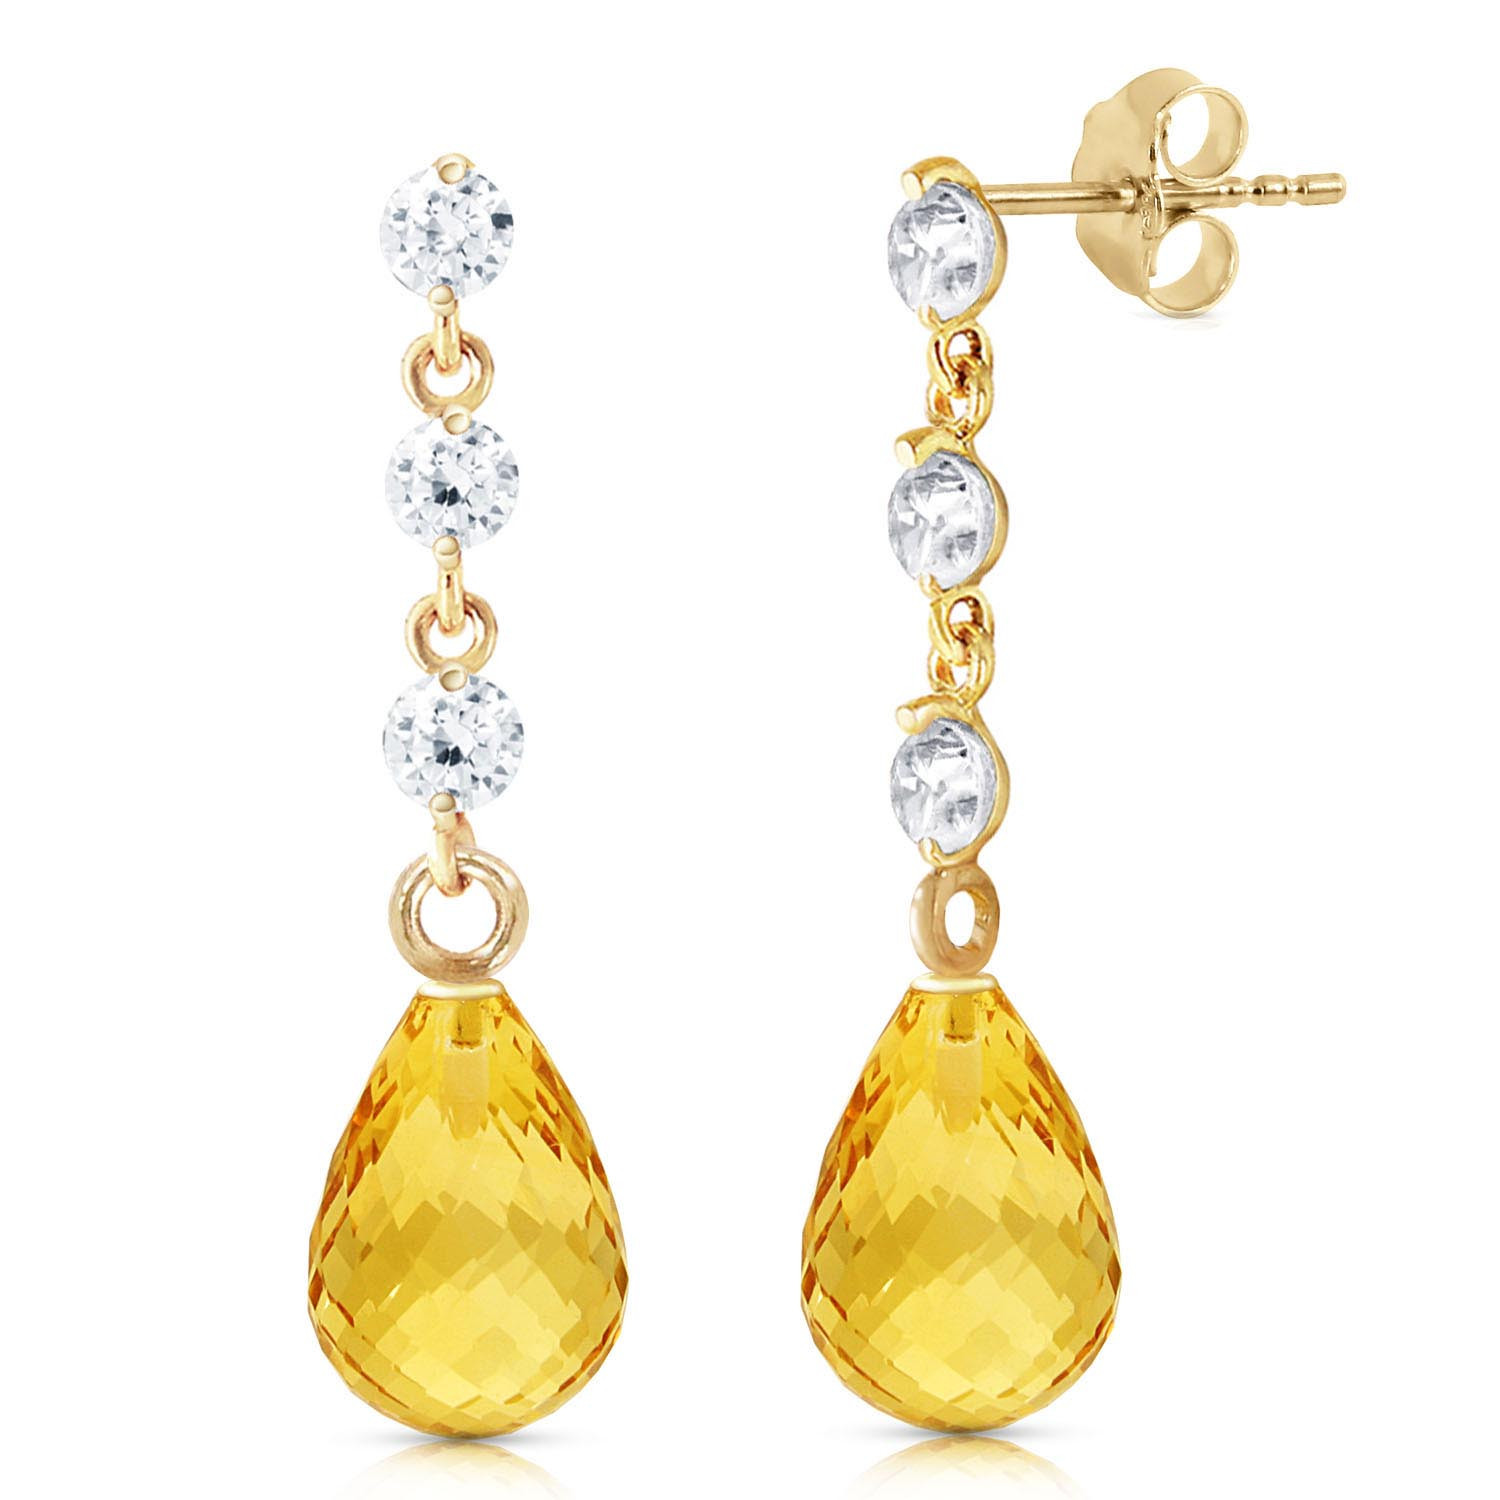 Citrine & Diamond Chain Droplet Earrings in 9ct Gold